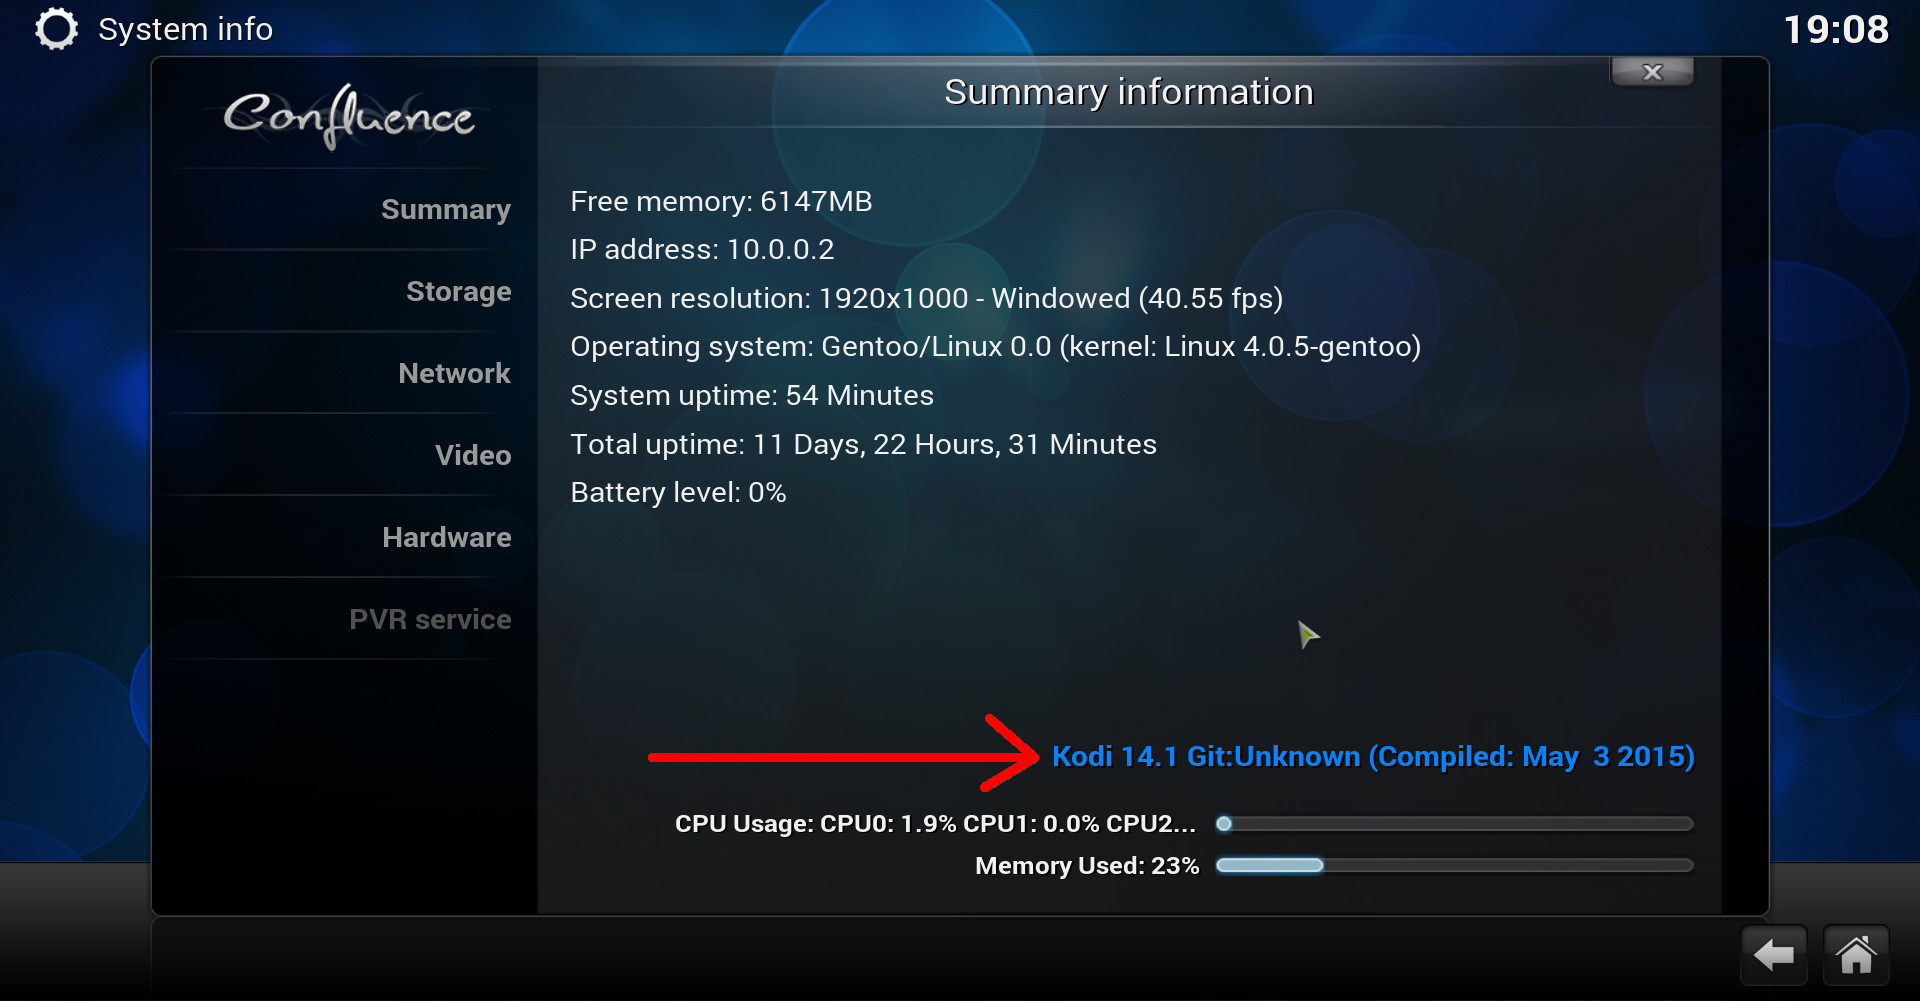 kodi version